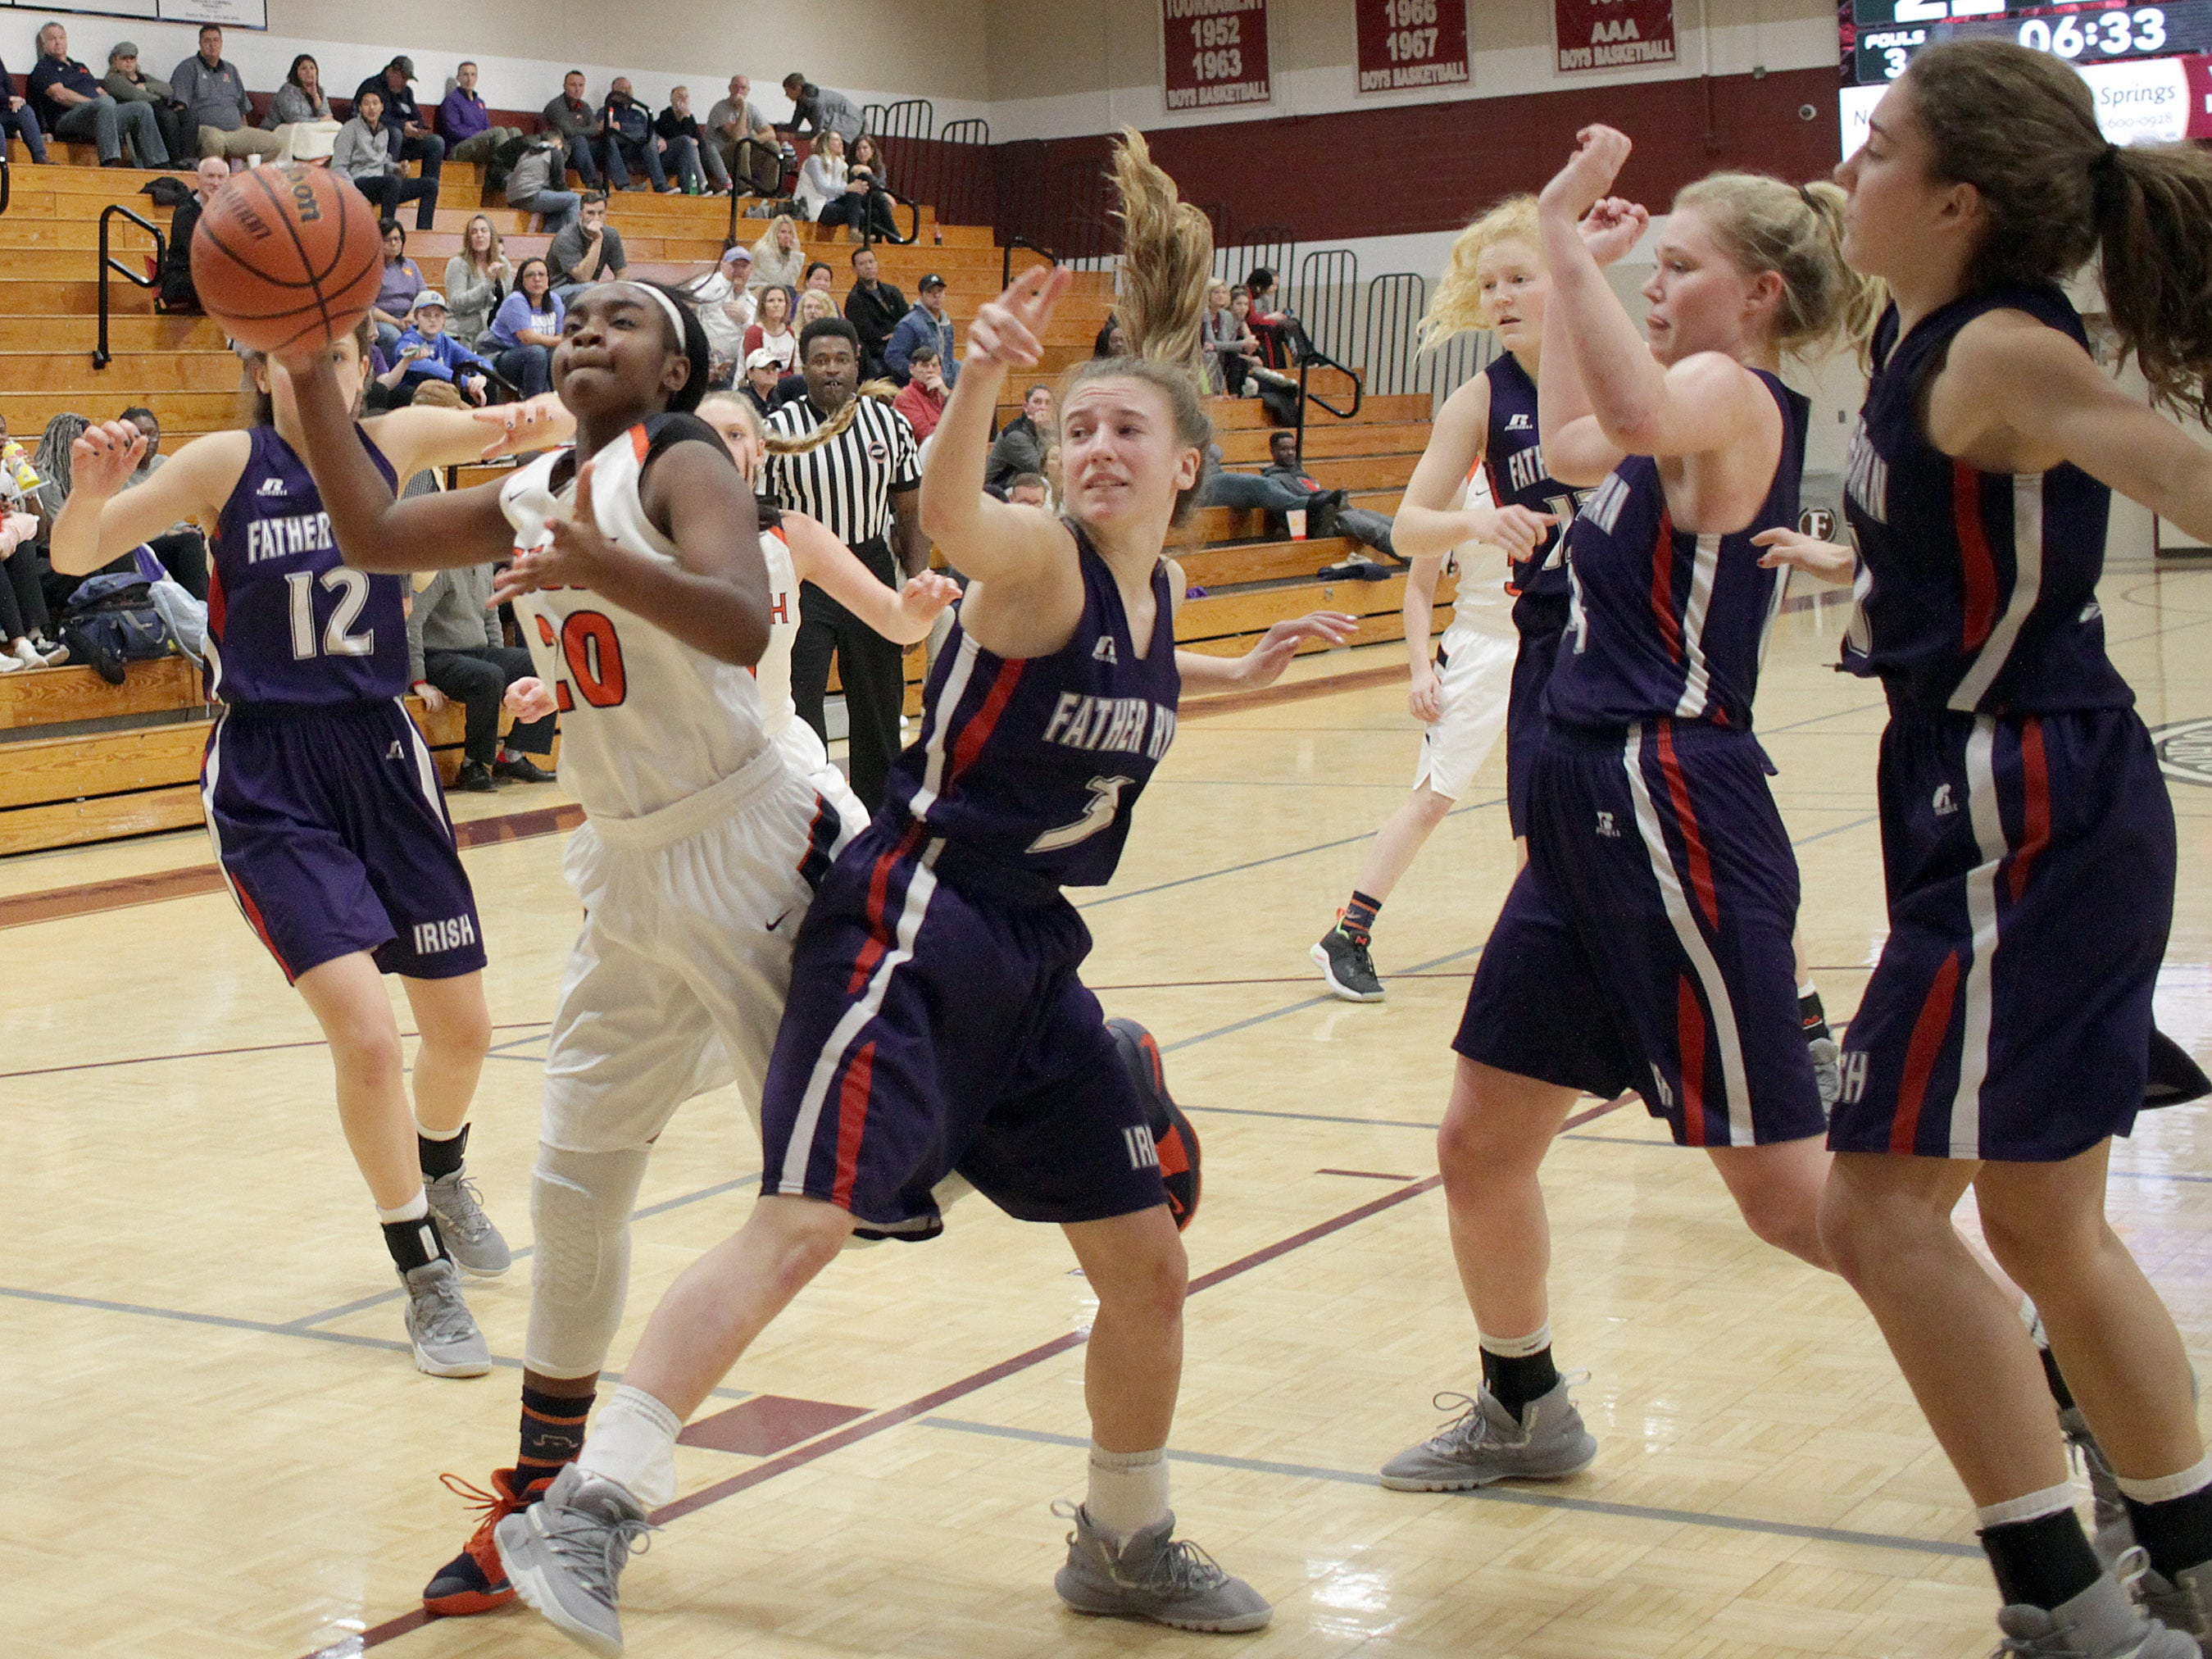 Beech's Deshiya Hoosier drives through the Father Ryan defense on Saturday, December 29, 2018.